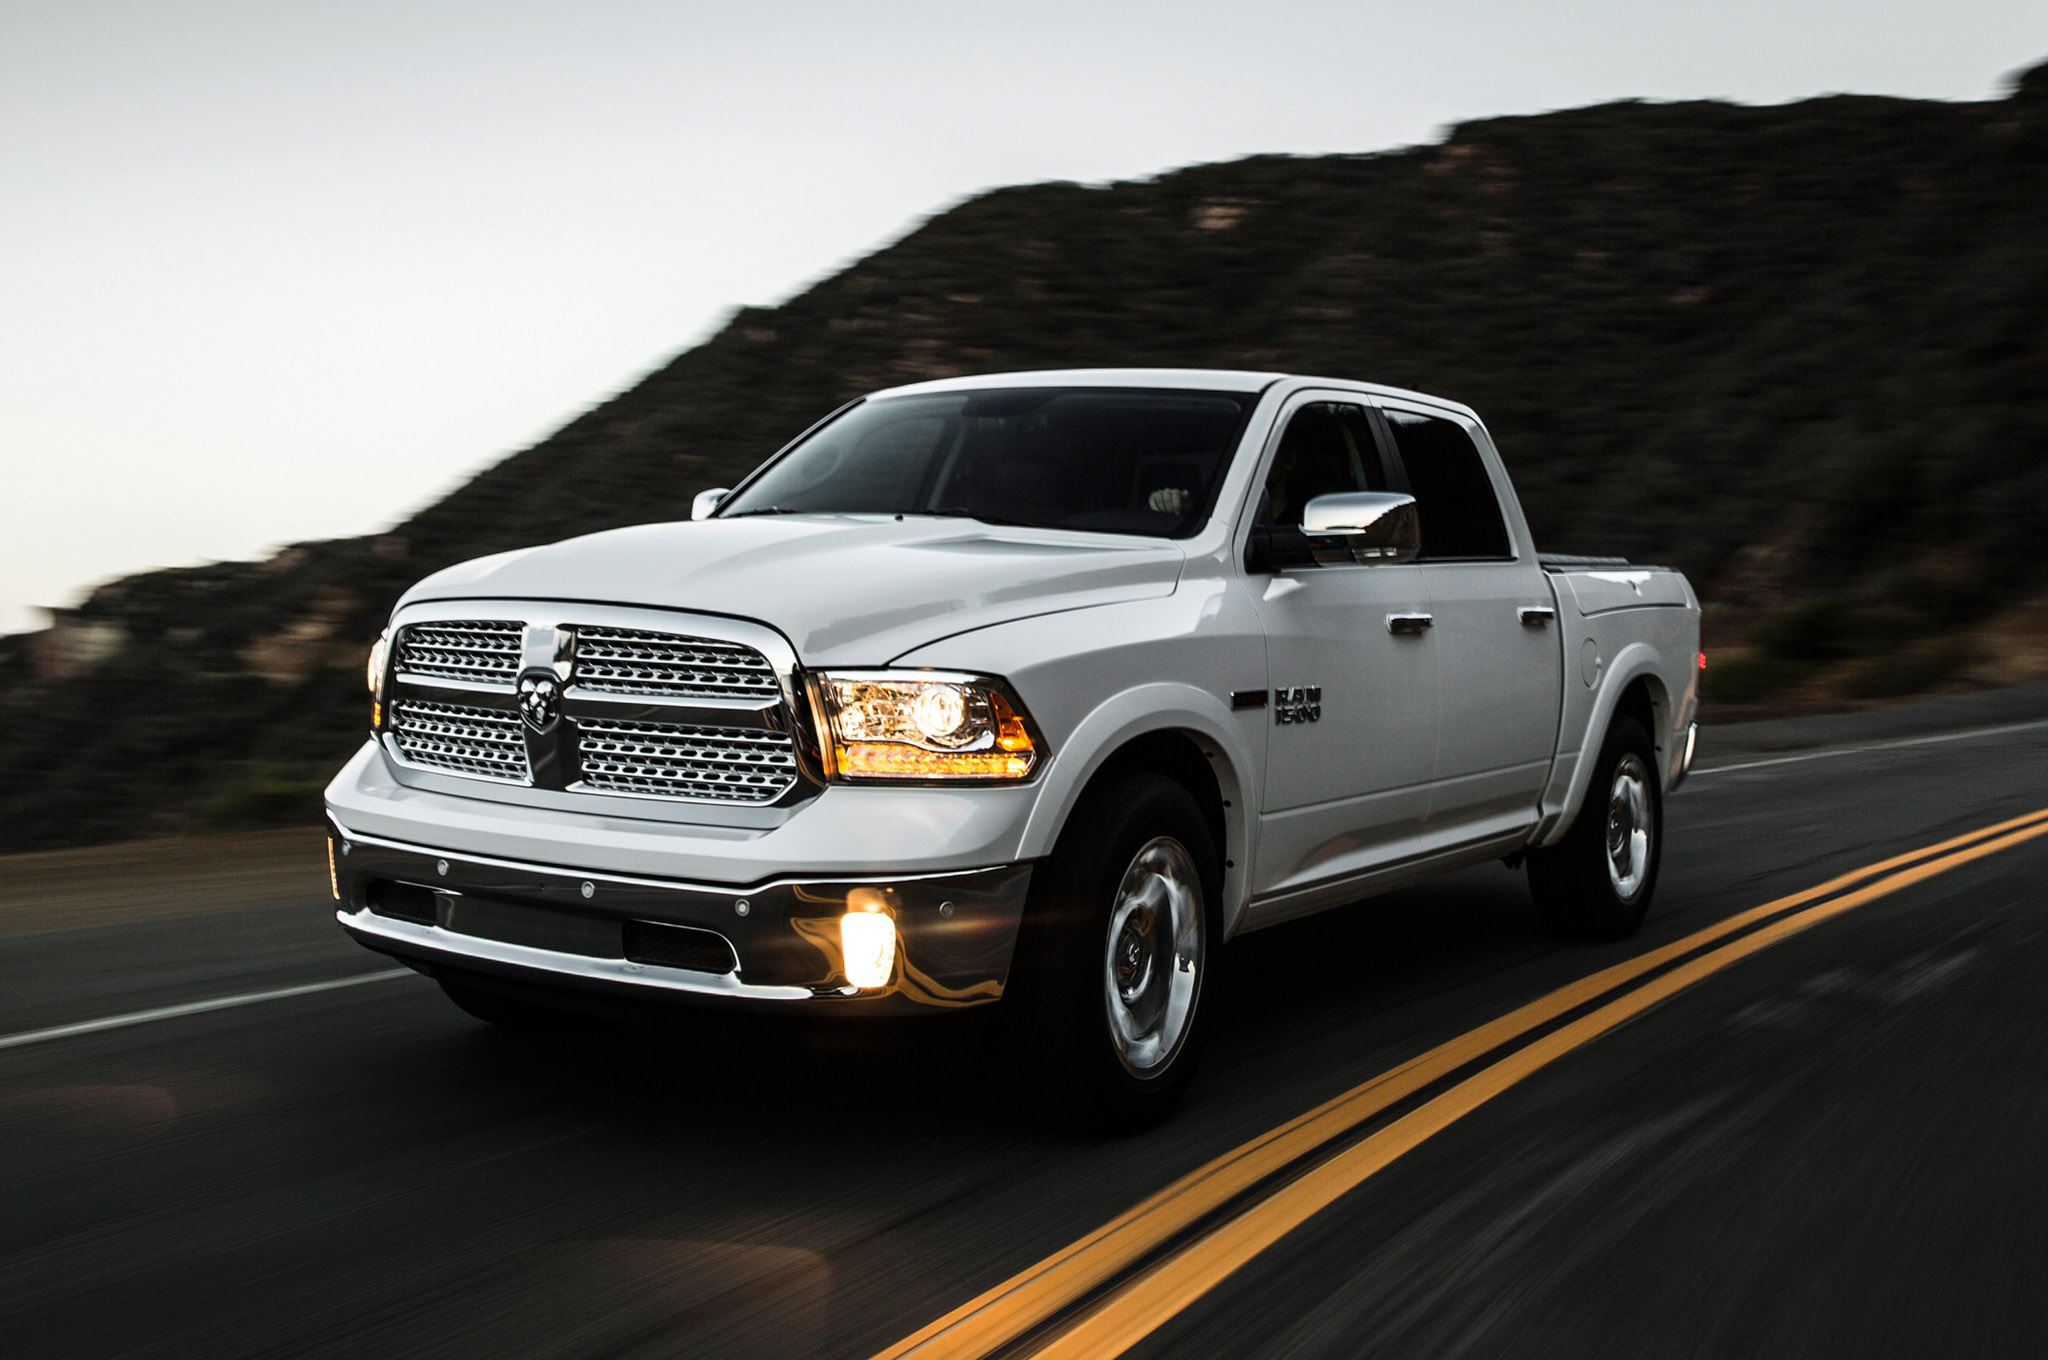 Ram 1500 Ecodiesel Review >> 2014 Dodge Ram 1500 EcoDiesel Records Best Fuel Economy Rating